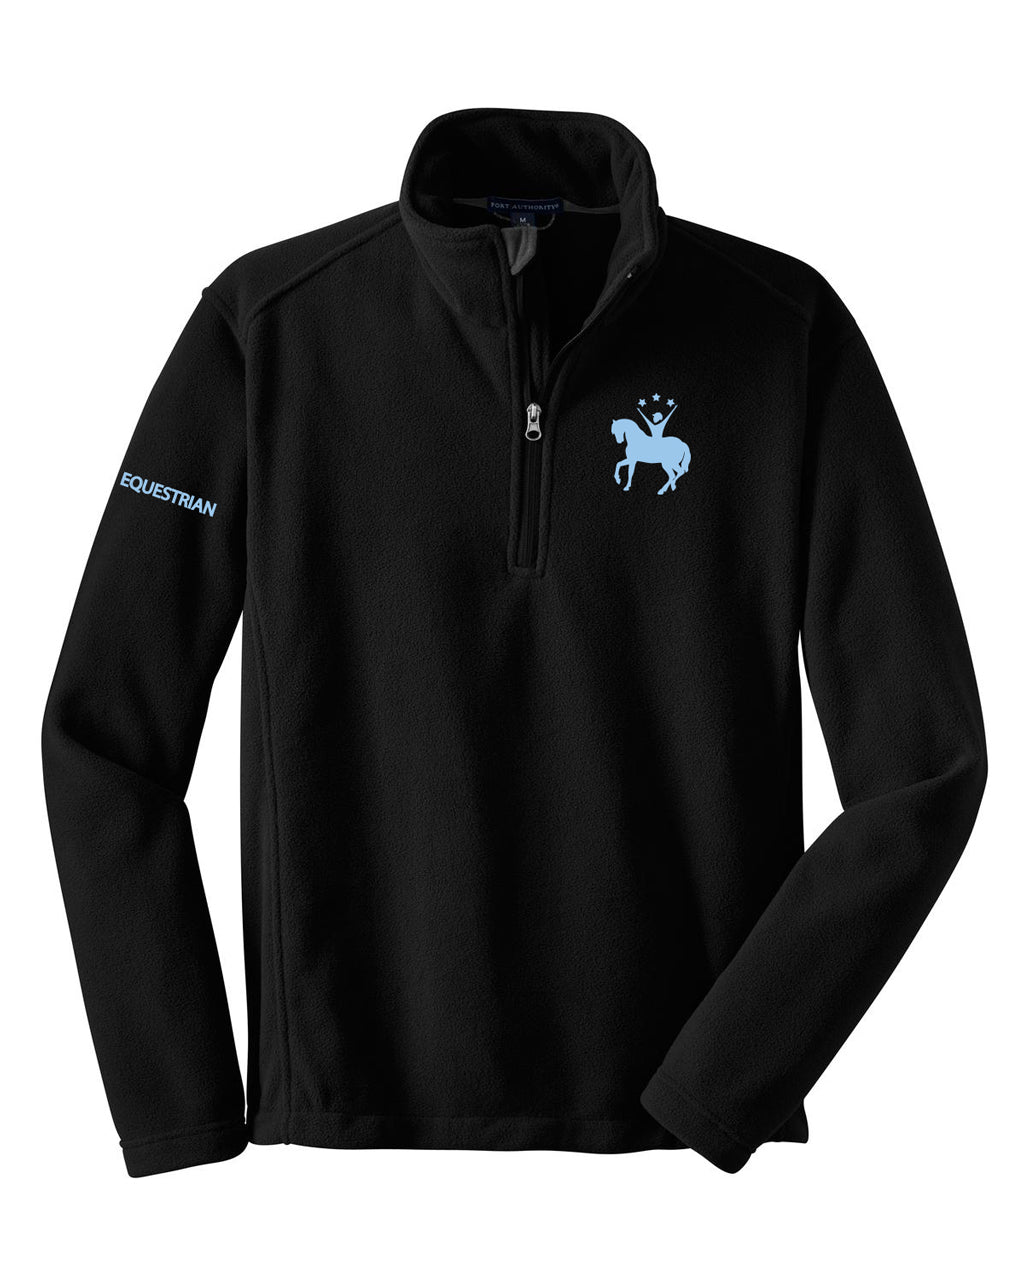 1/4 Zip Ready Set Ride Fleece Pullover